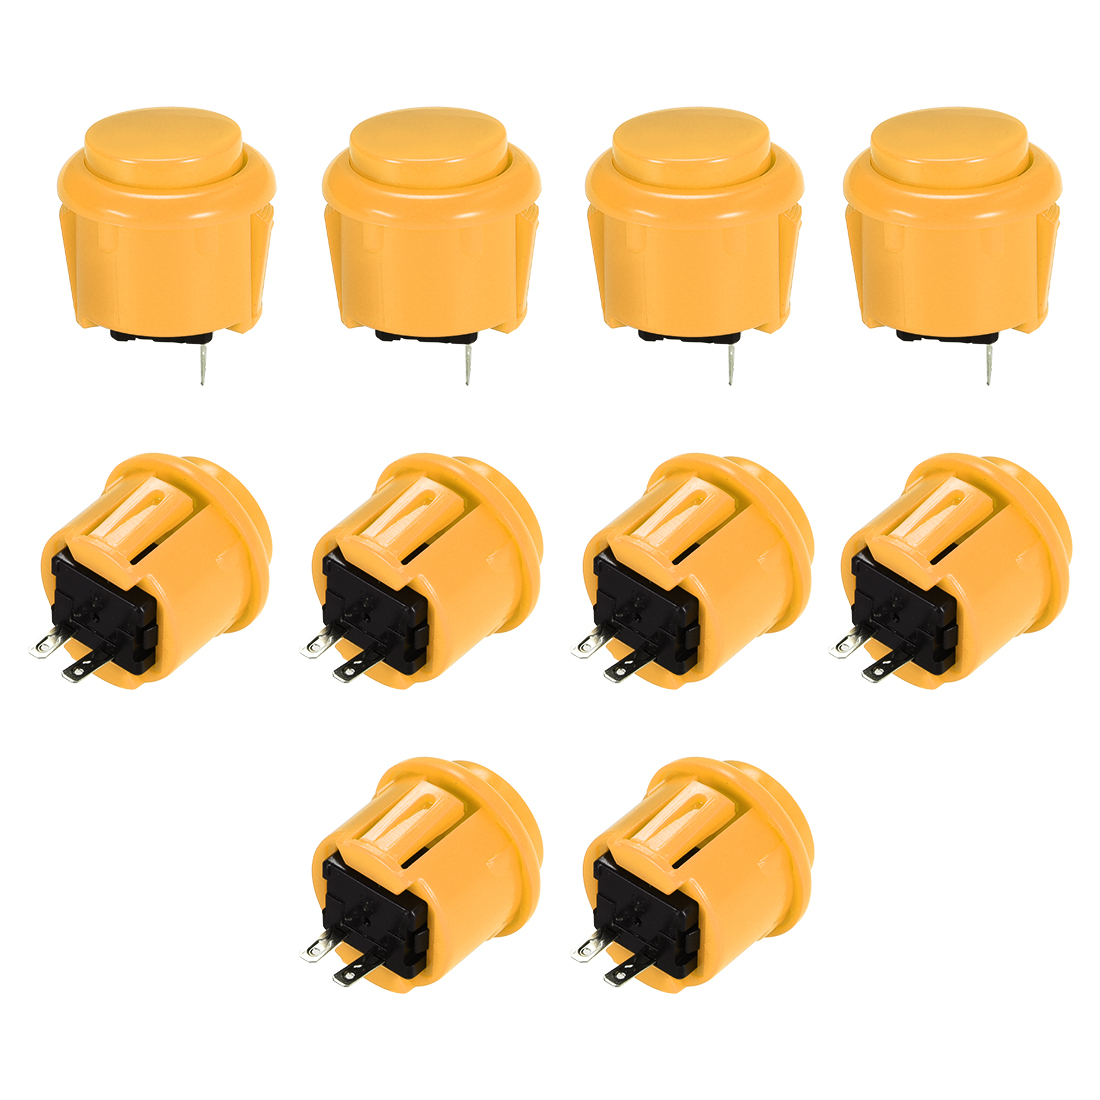 23mm Momentary Game Push Button Switch for Arcade Video Games Yellow 10pcs